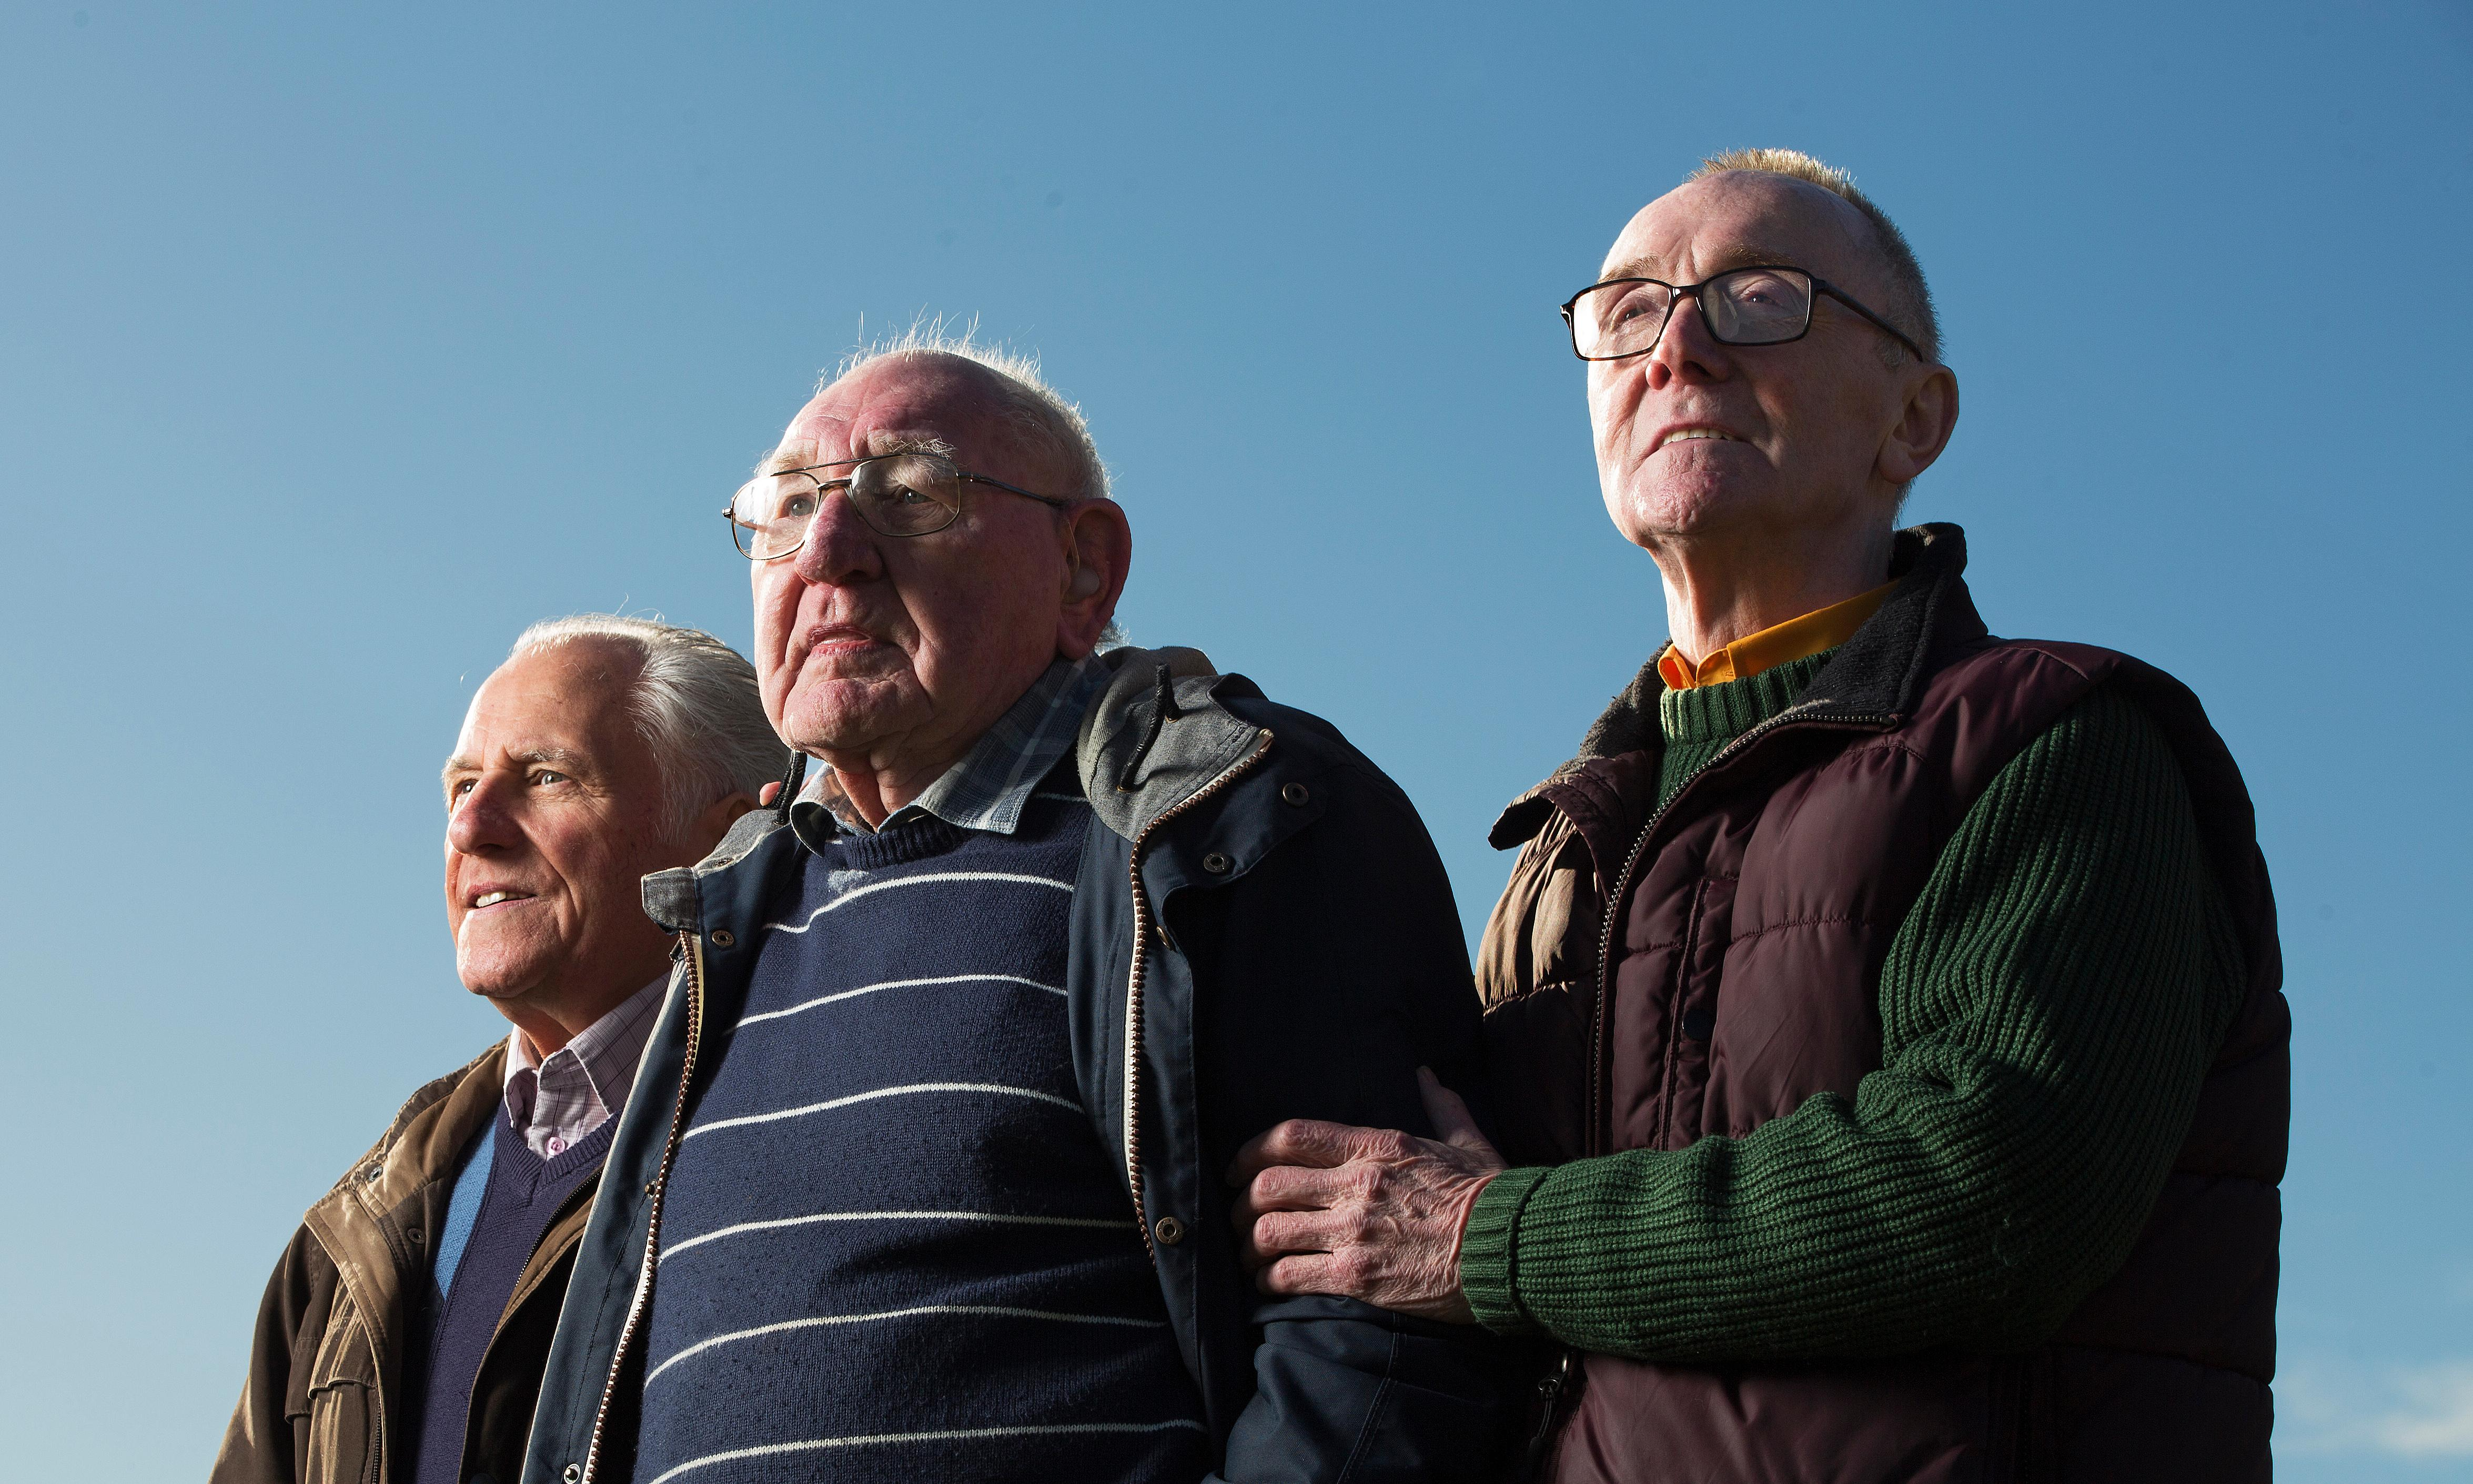 Remember when the unions could take on a dictator? These three do...